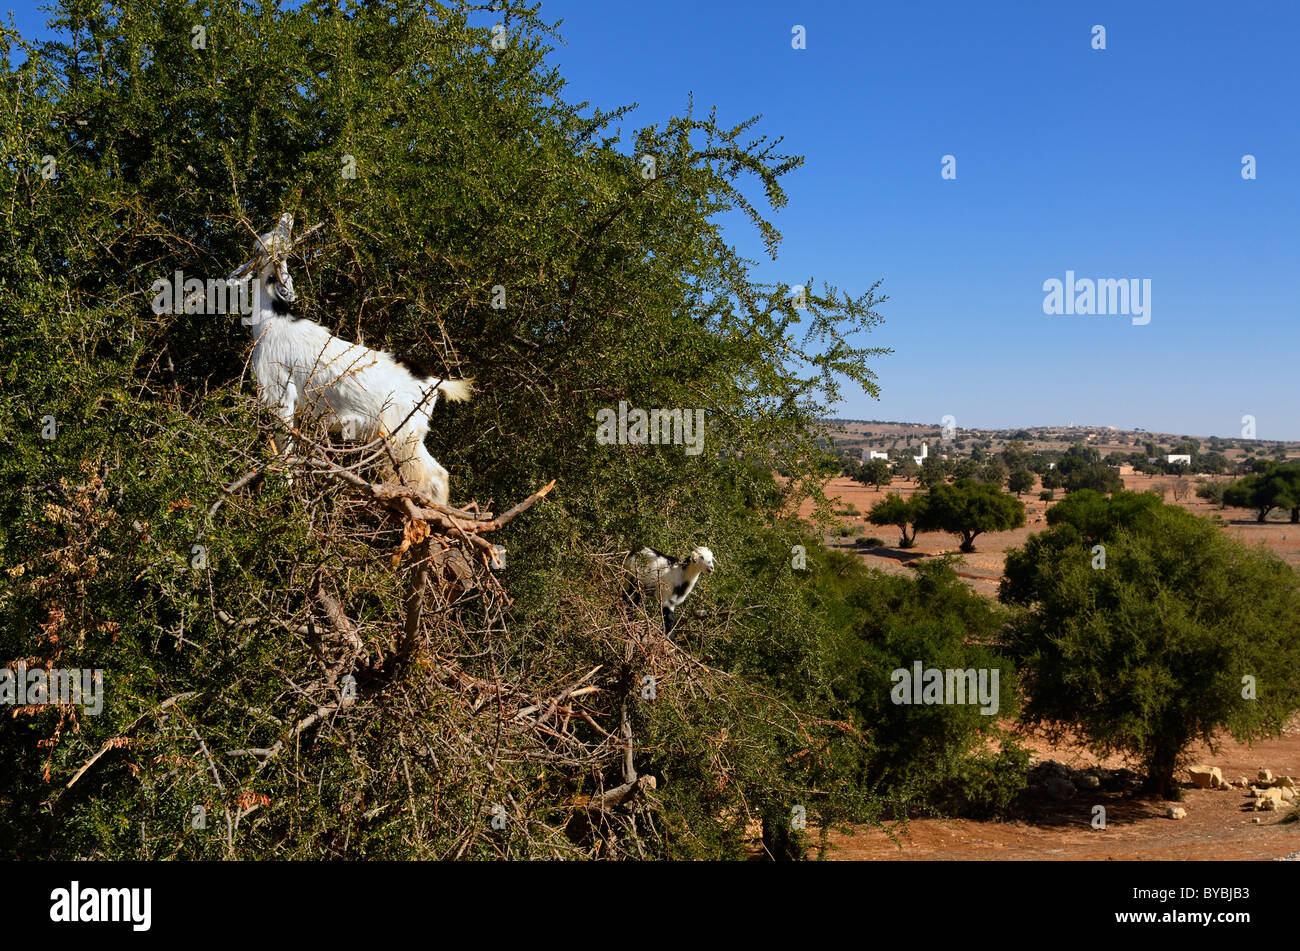 Two goats high up an Argan tree to eat the seed kernels south of Essaouira Morocco - Stock Image